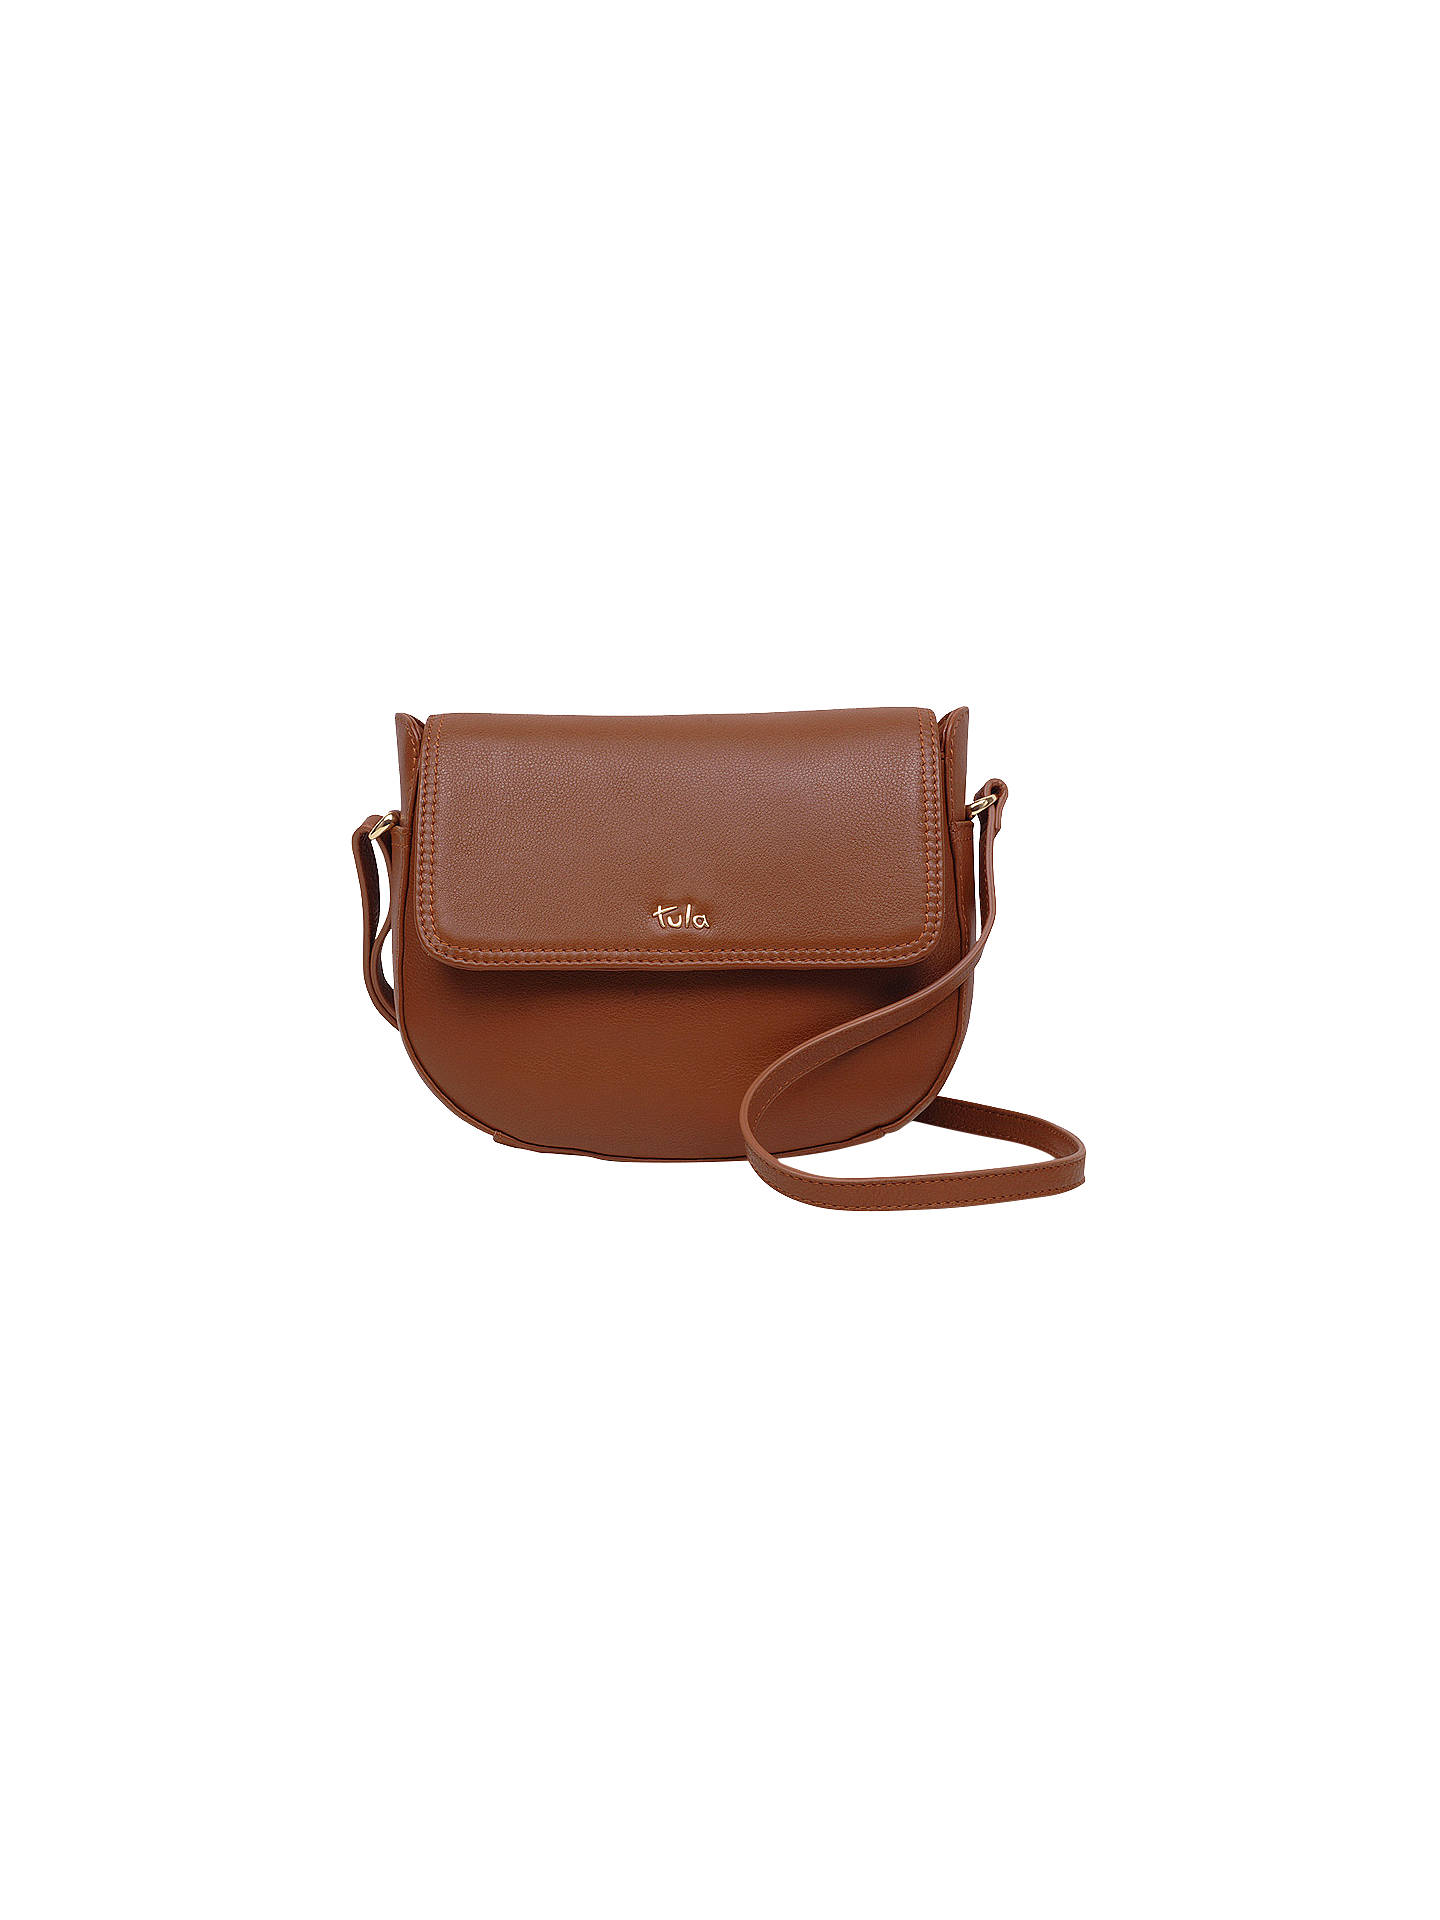 BuyTula Originals Leather Medium Curved Cross Body Bag, Tan Online at johnlewis.com